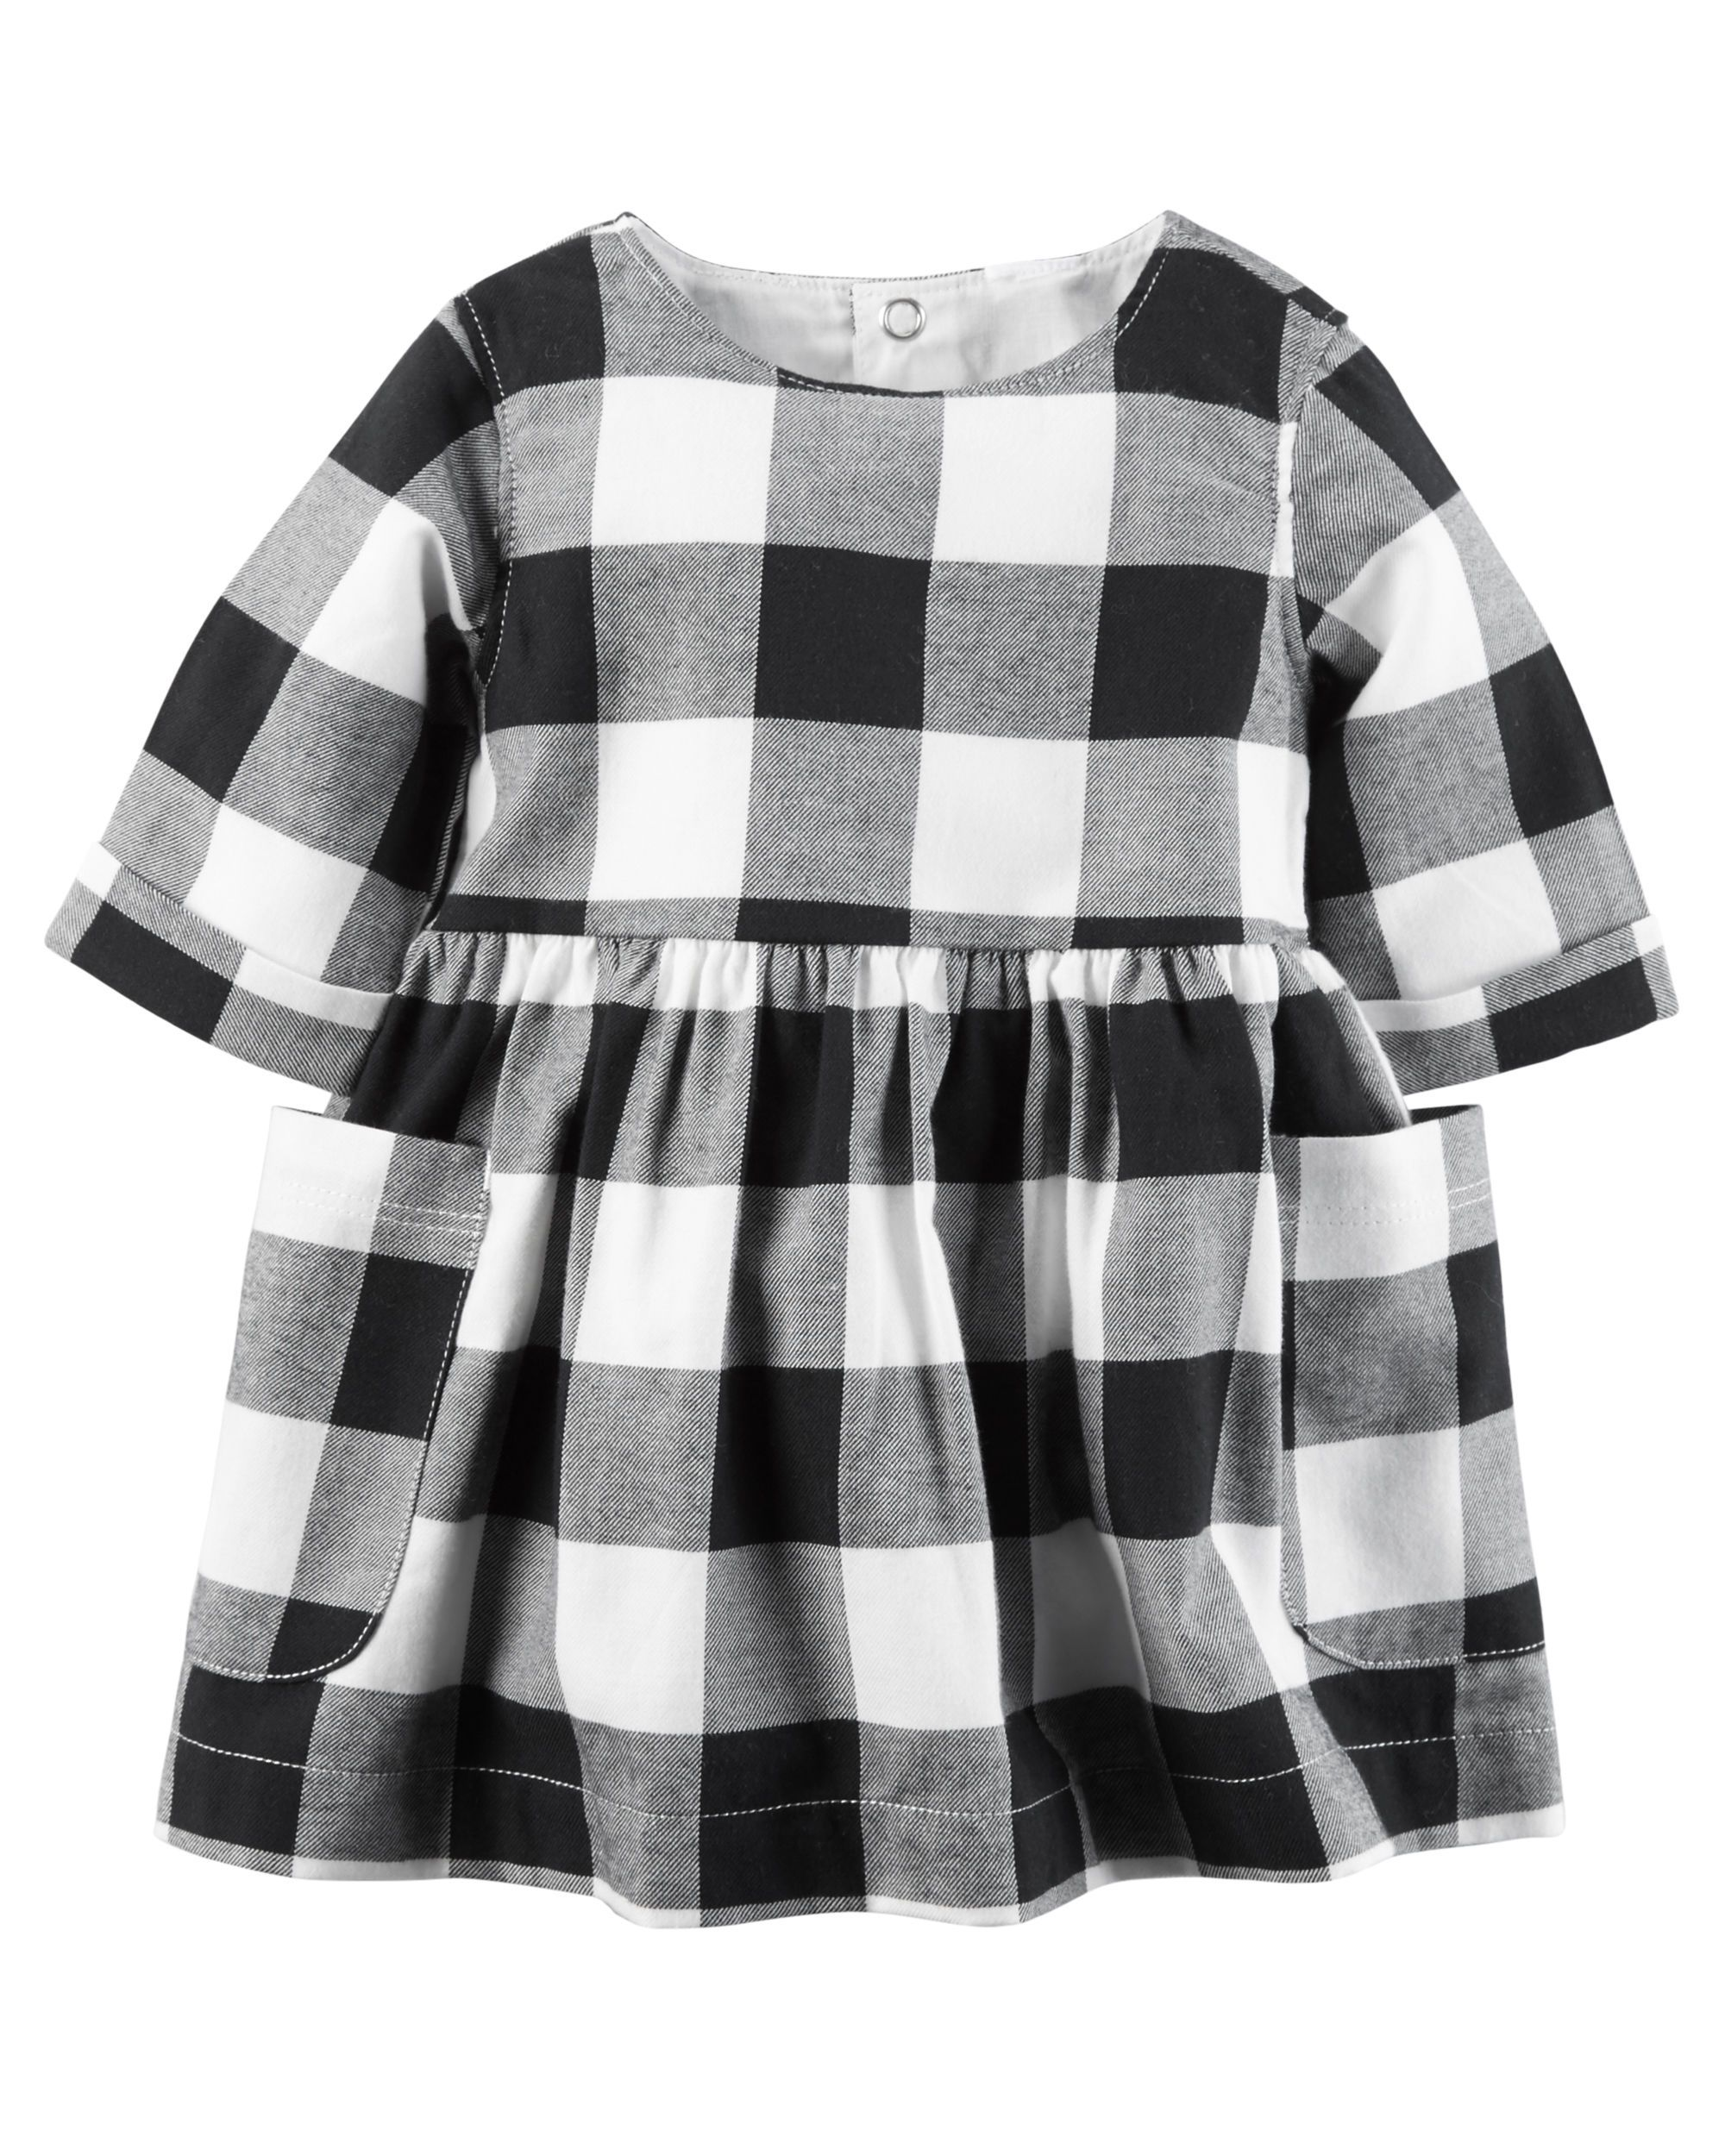 Gingham Dress  Babies Girls and Babies clothes